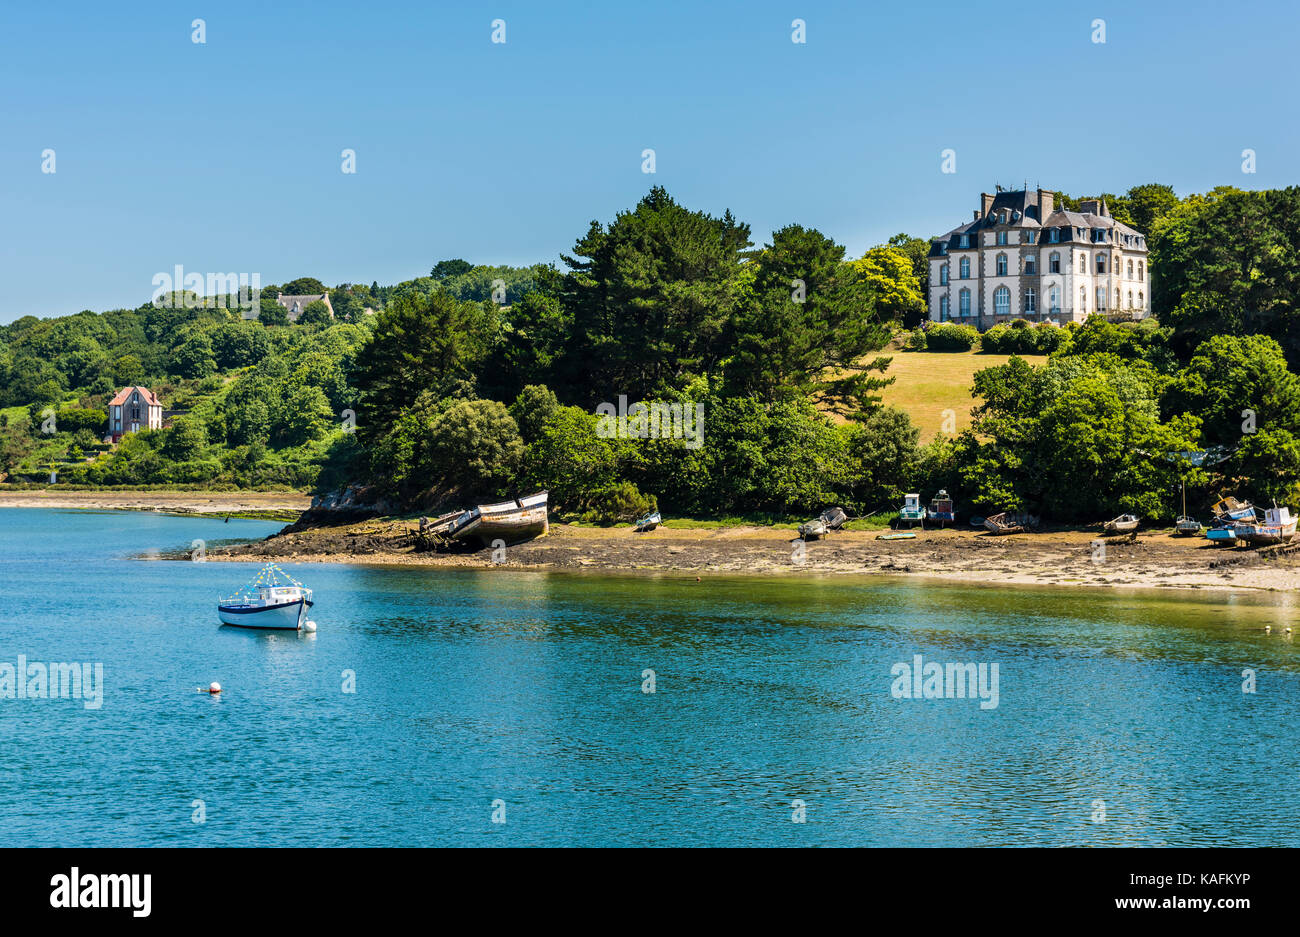 River scene from the bridge in Audierne, Brittany, France - Stock Image